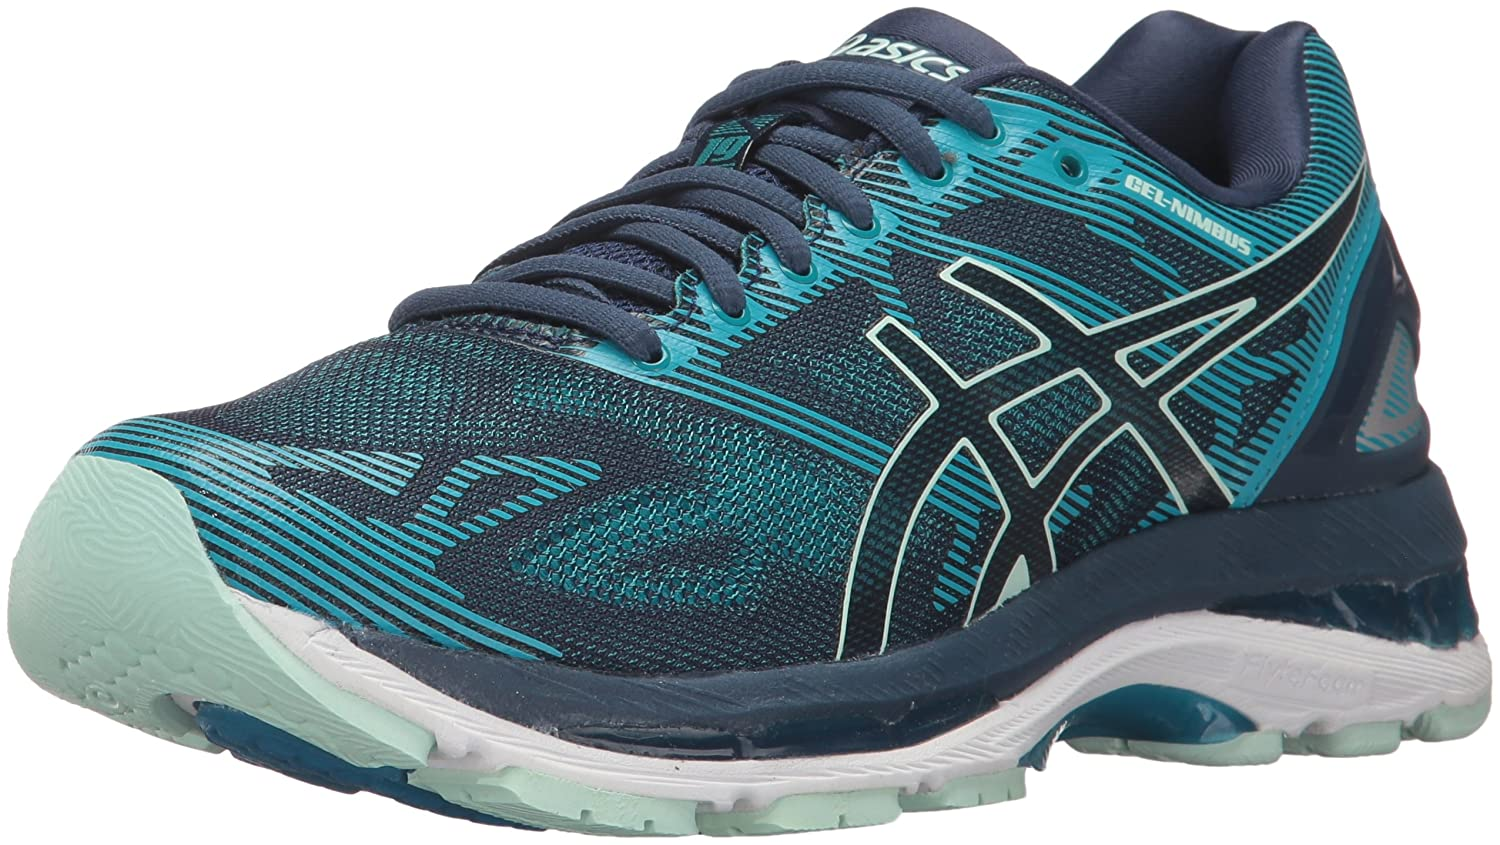 ASICS Women's Gel-Nimbus 19 Running Shoe B01N3PLMOG 9 B(M) US|Insignia Blue/Glacier Sea/Crystal Blue